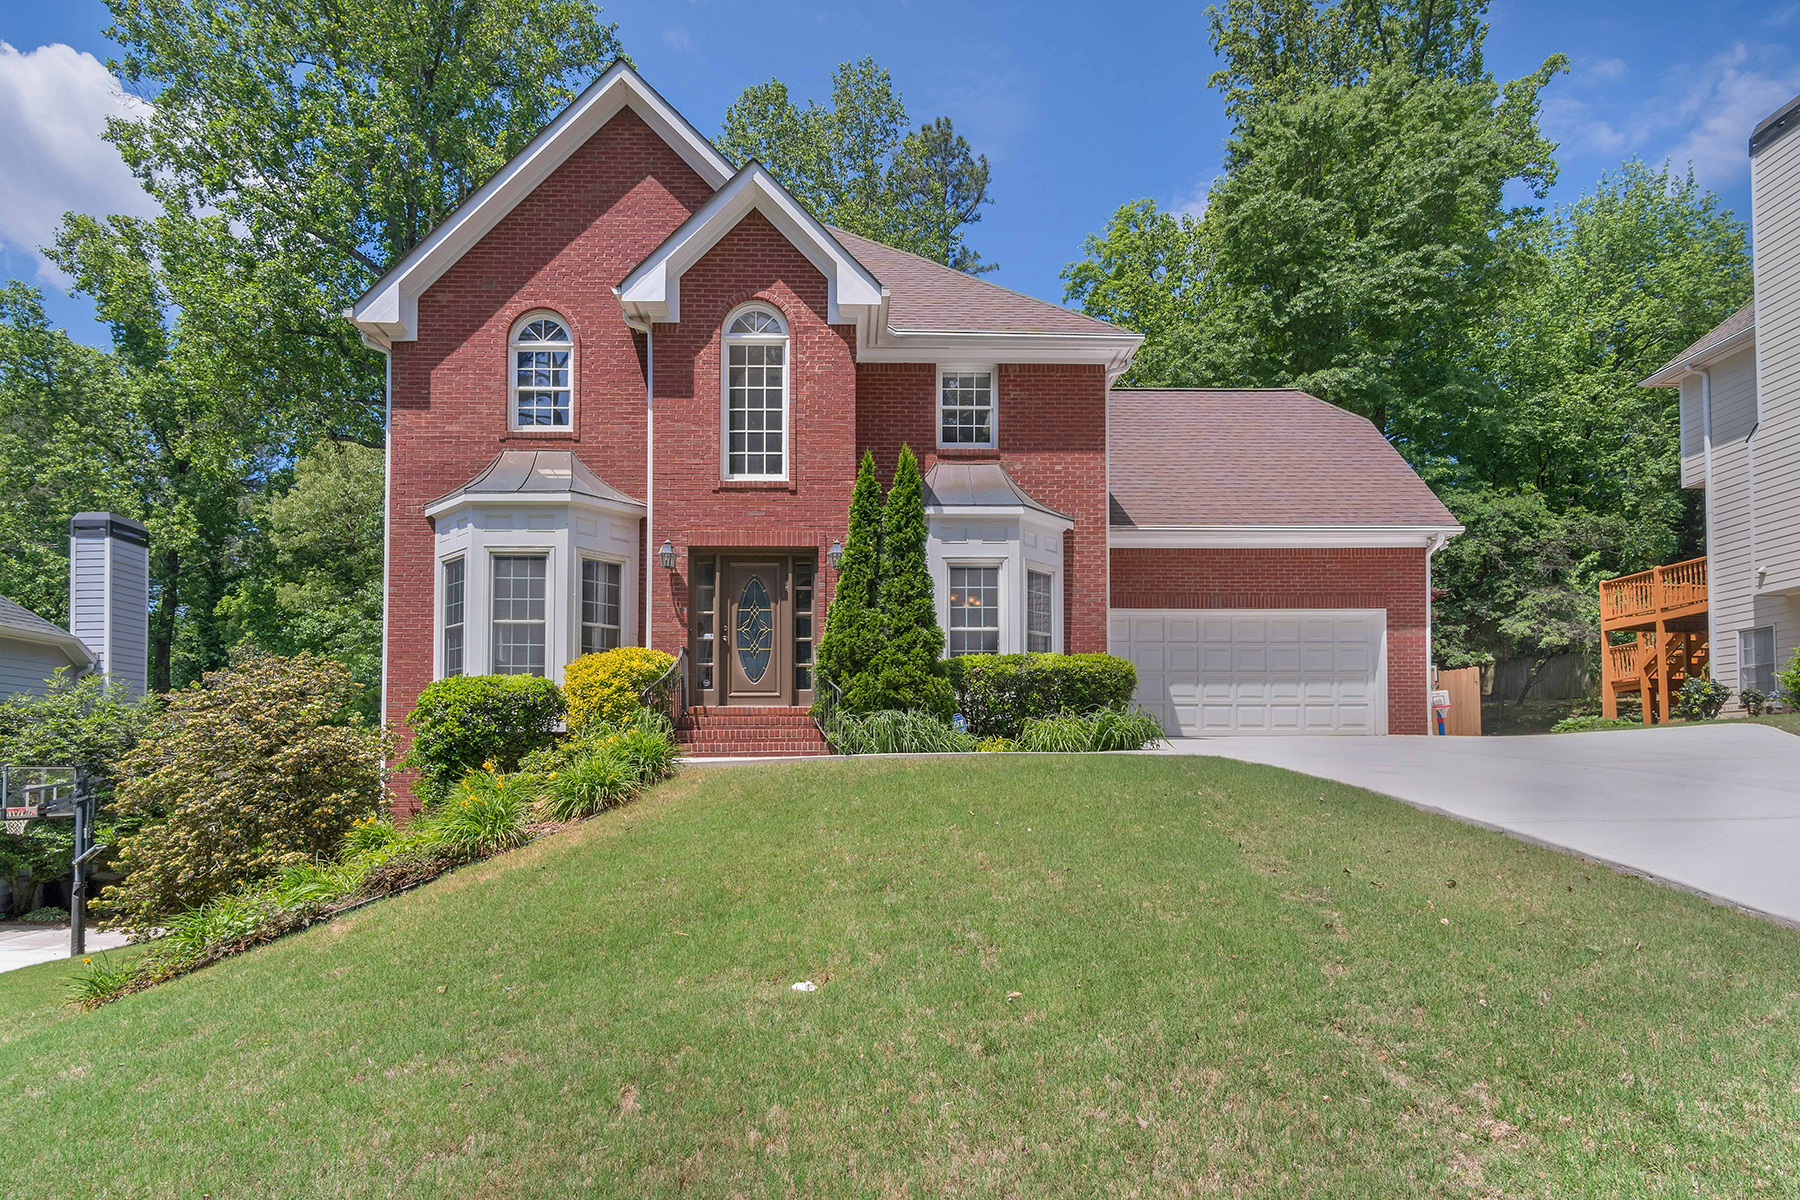 Single Family Home for Sale at Light And Bright In Sagamore/Lakeside School District 1840 Brockton Glen Atlanta, Georgia 30329 United States